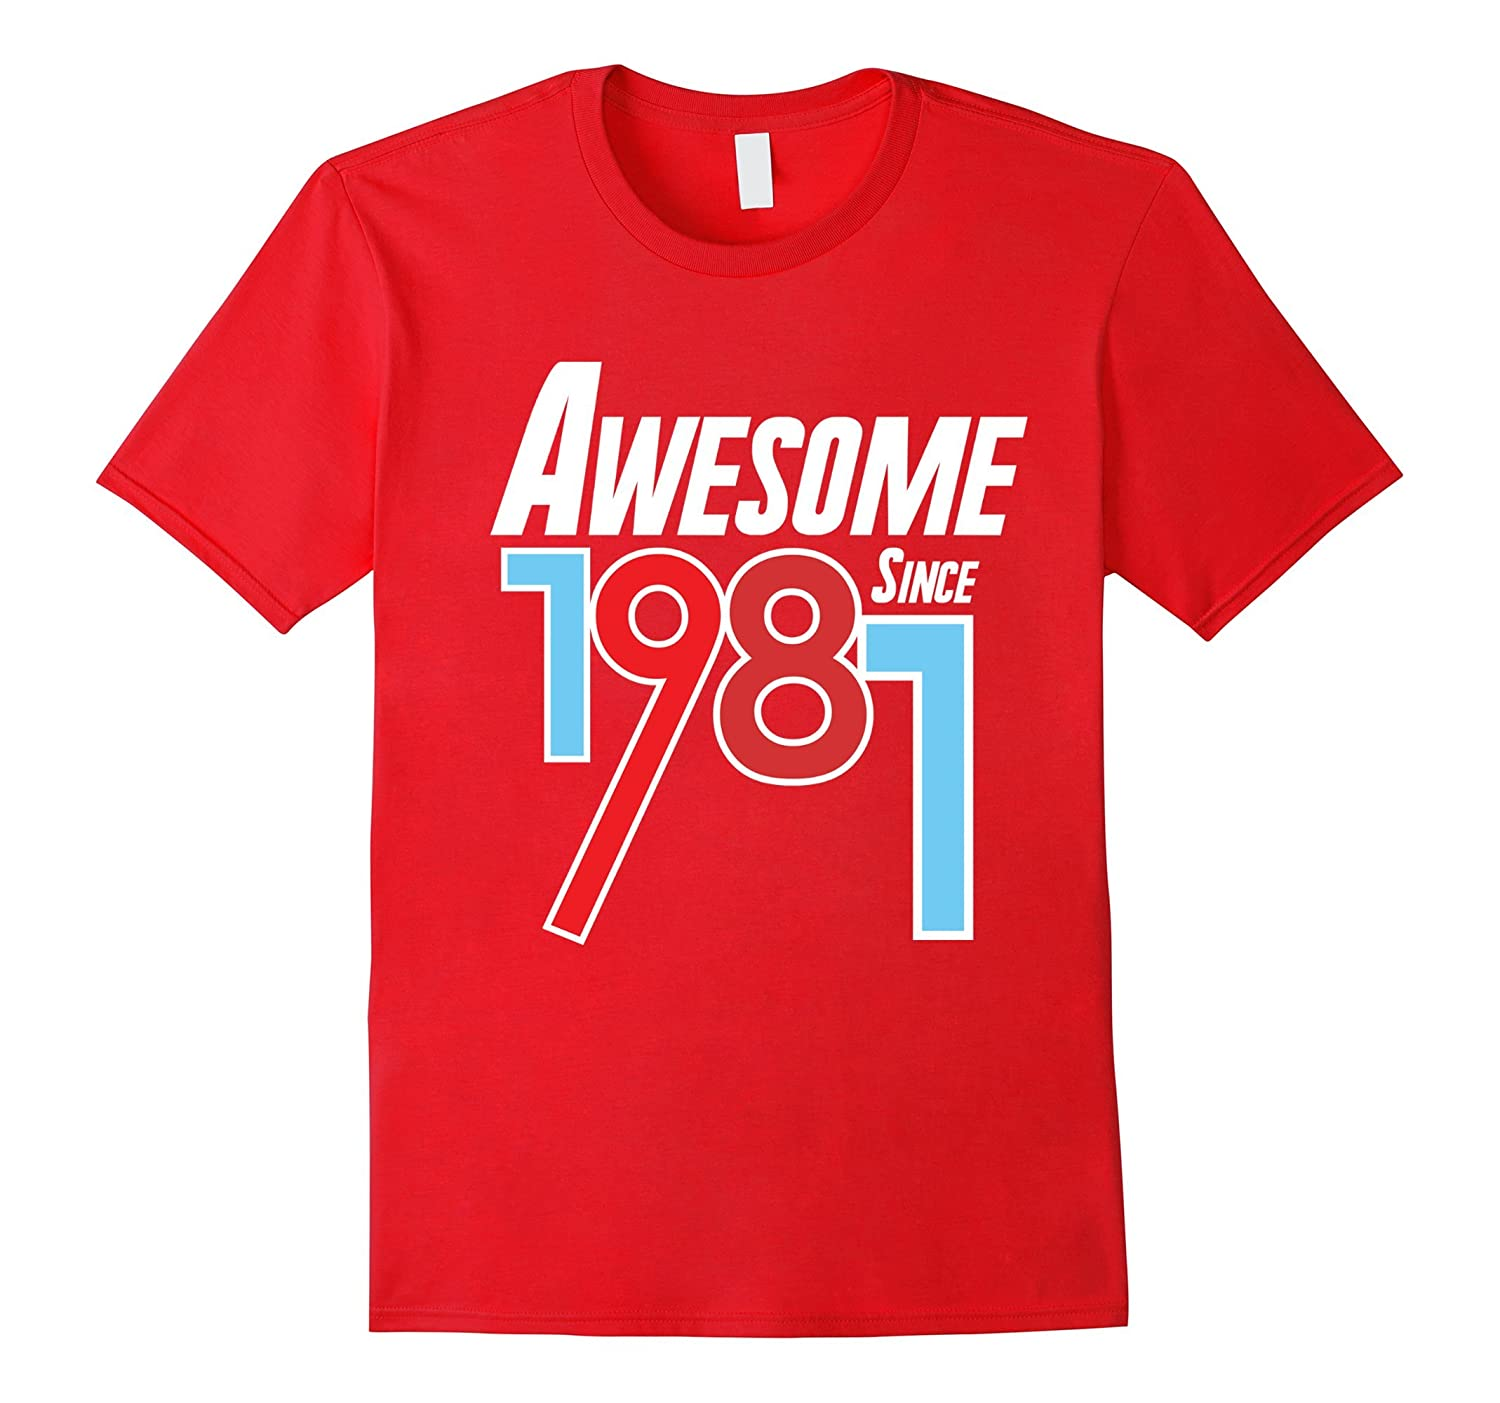 Awesome Since 1981 36th Birthday Gift T-Shirt-Vaci